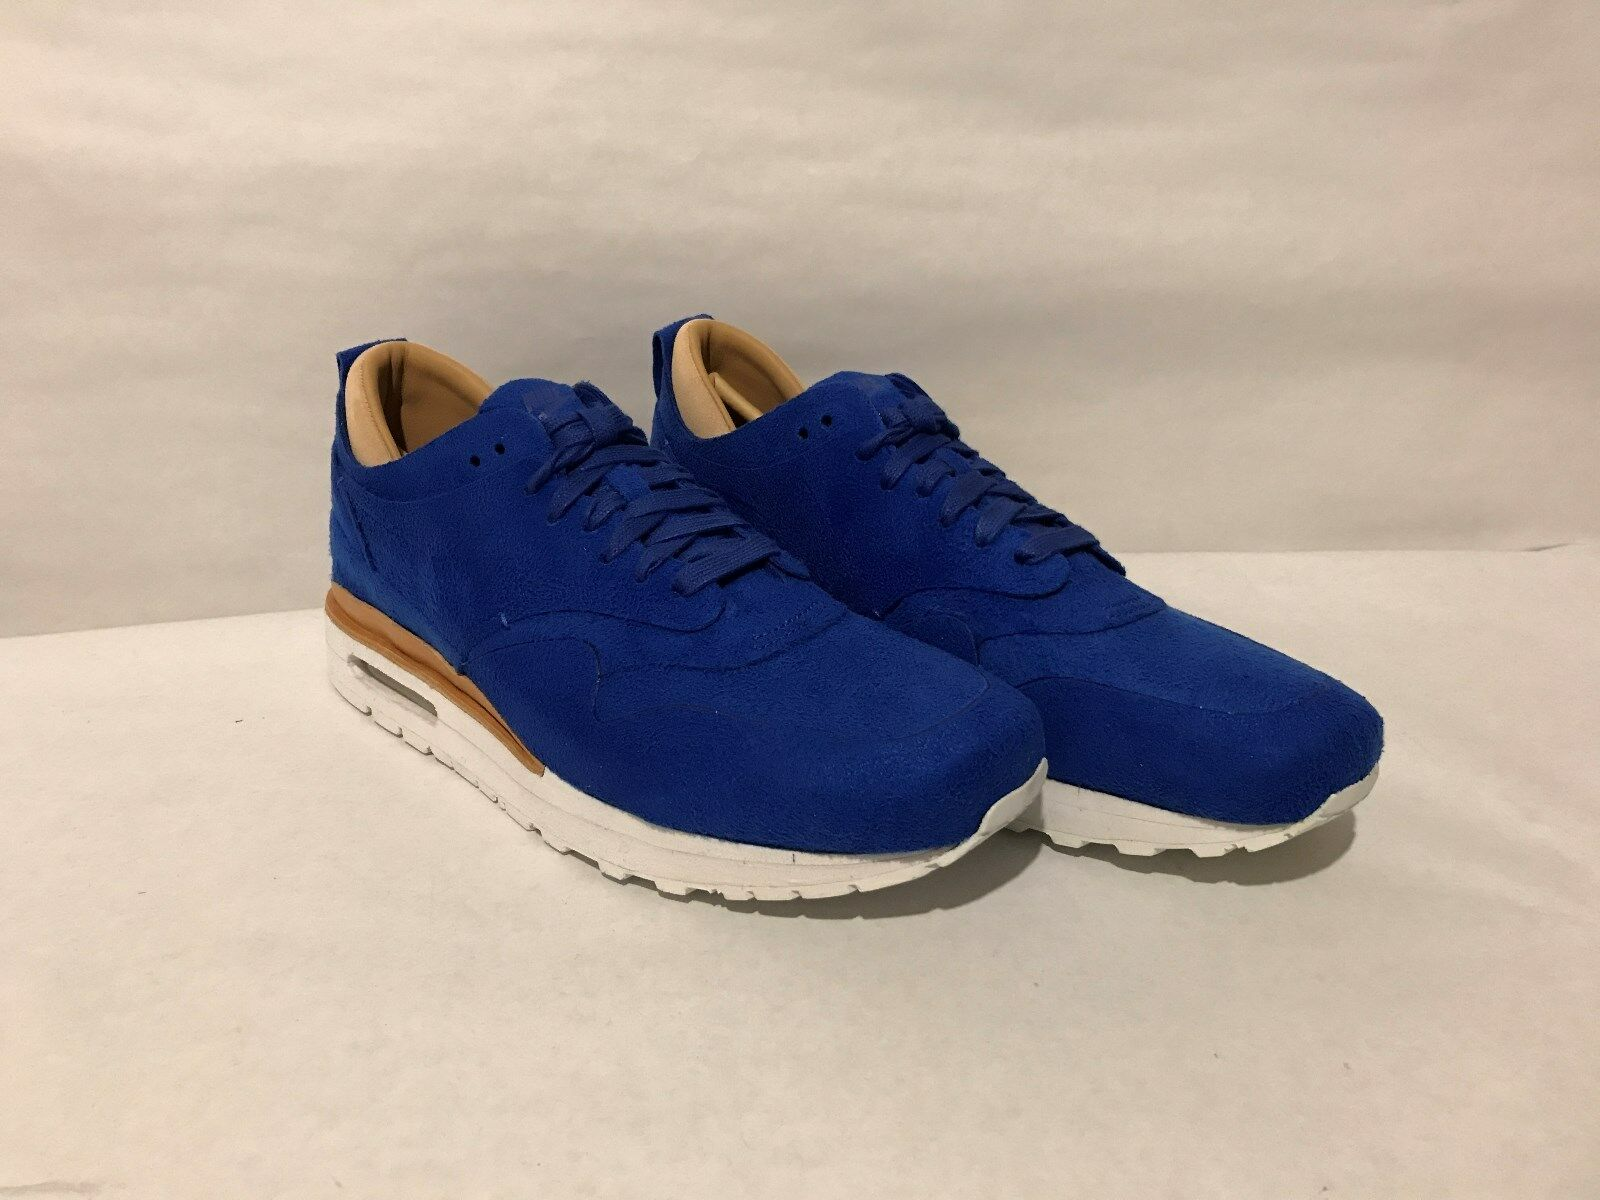 Nike air max 1 royal uomini scarpe da corsa partita royal new senza la figura 847671-441